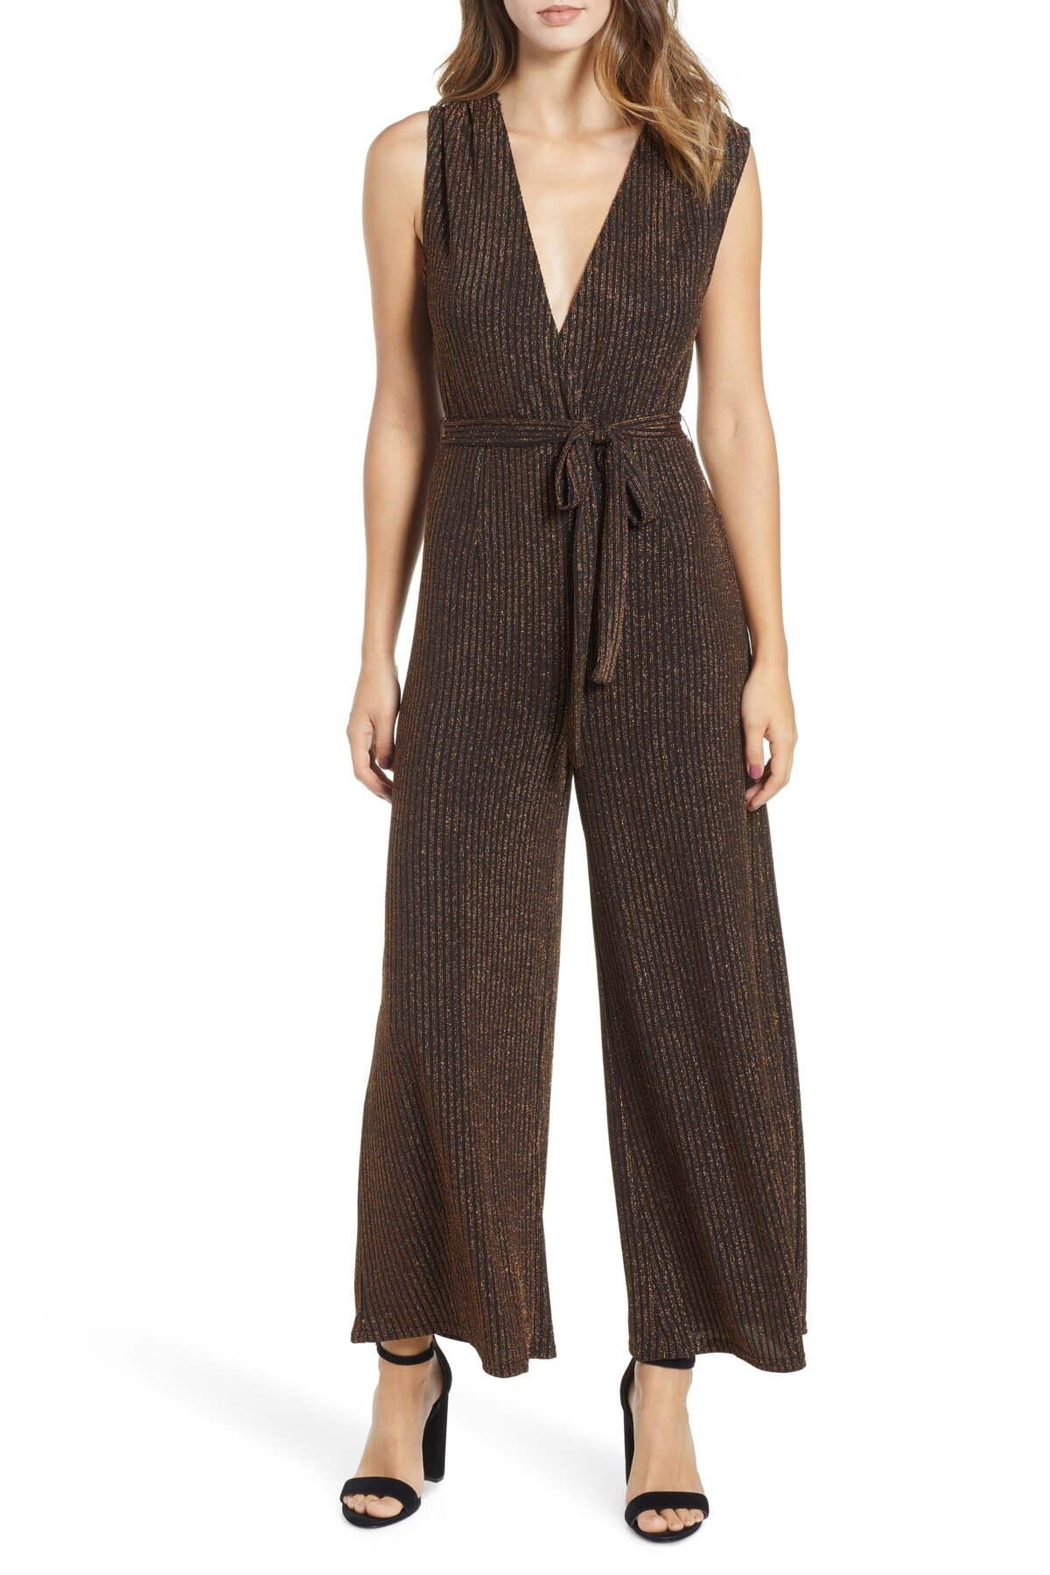 Some Days Lovin Lover Lover Jumpsuit - Main Image